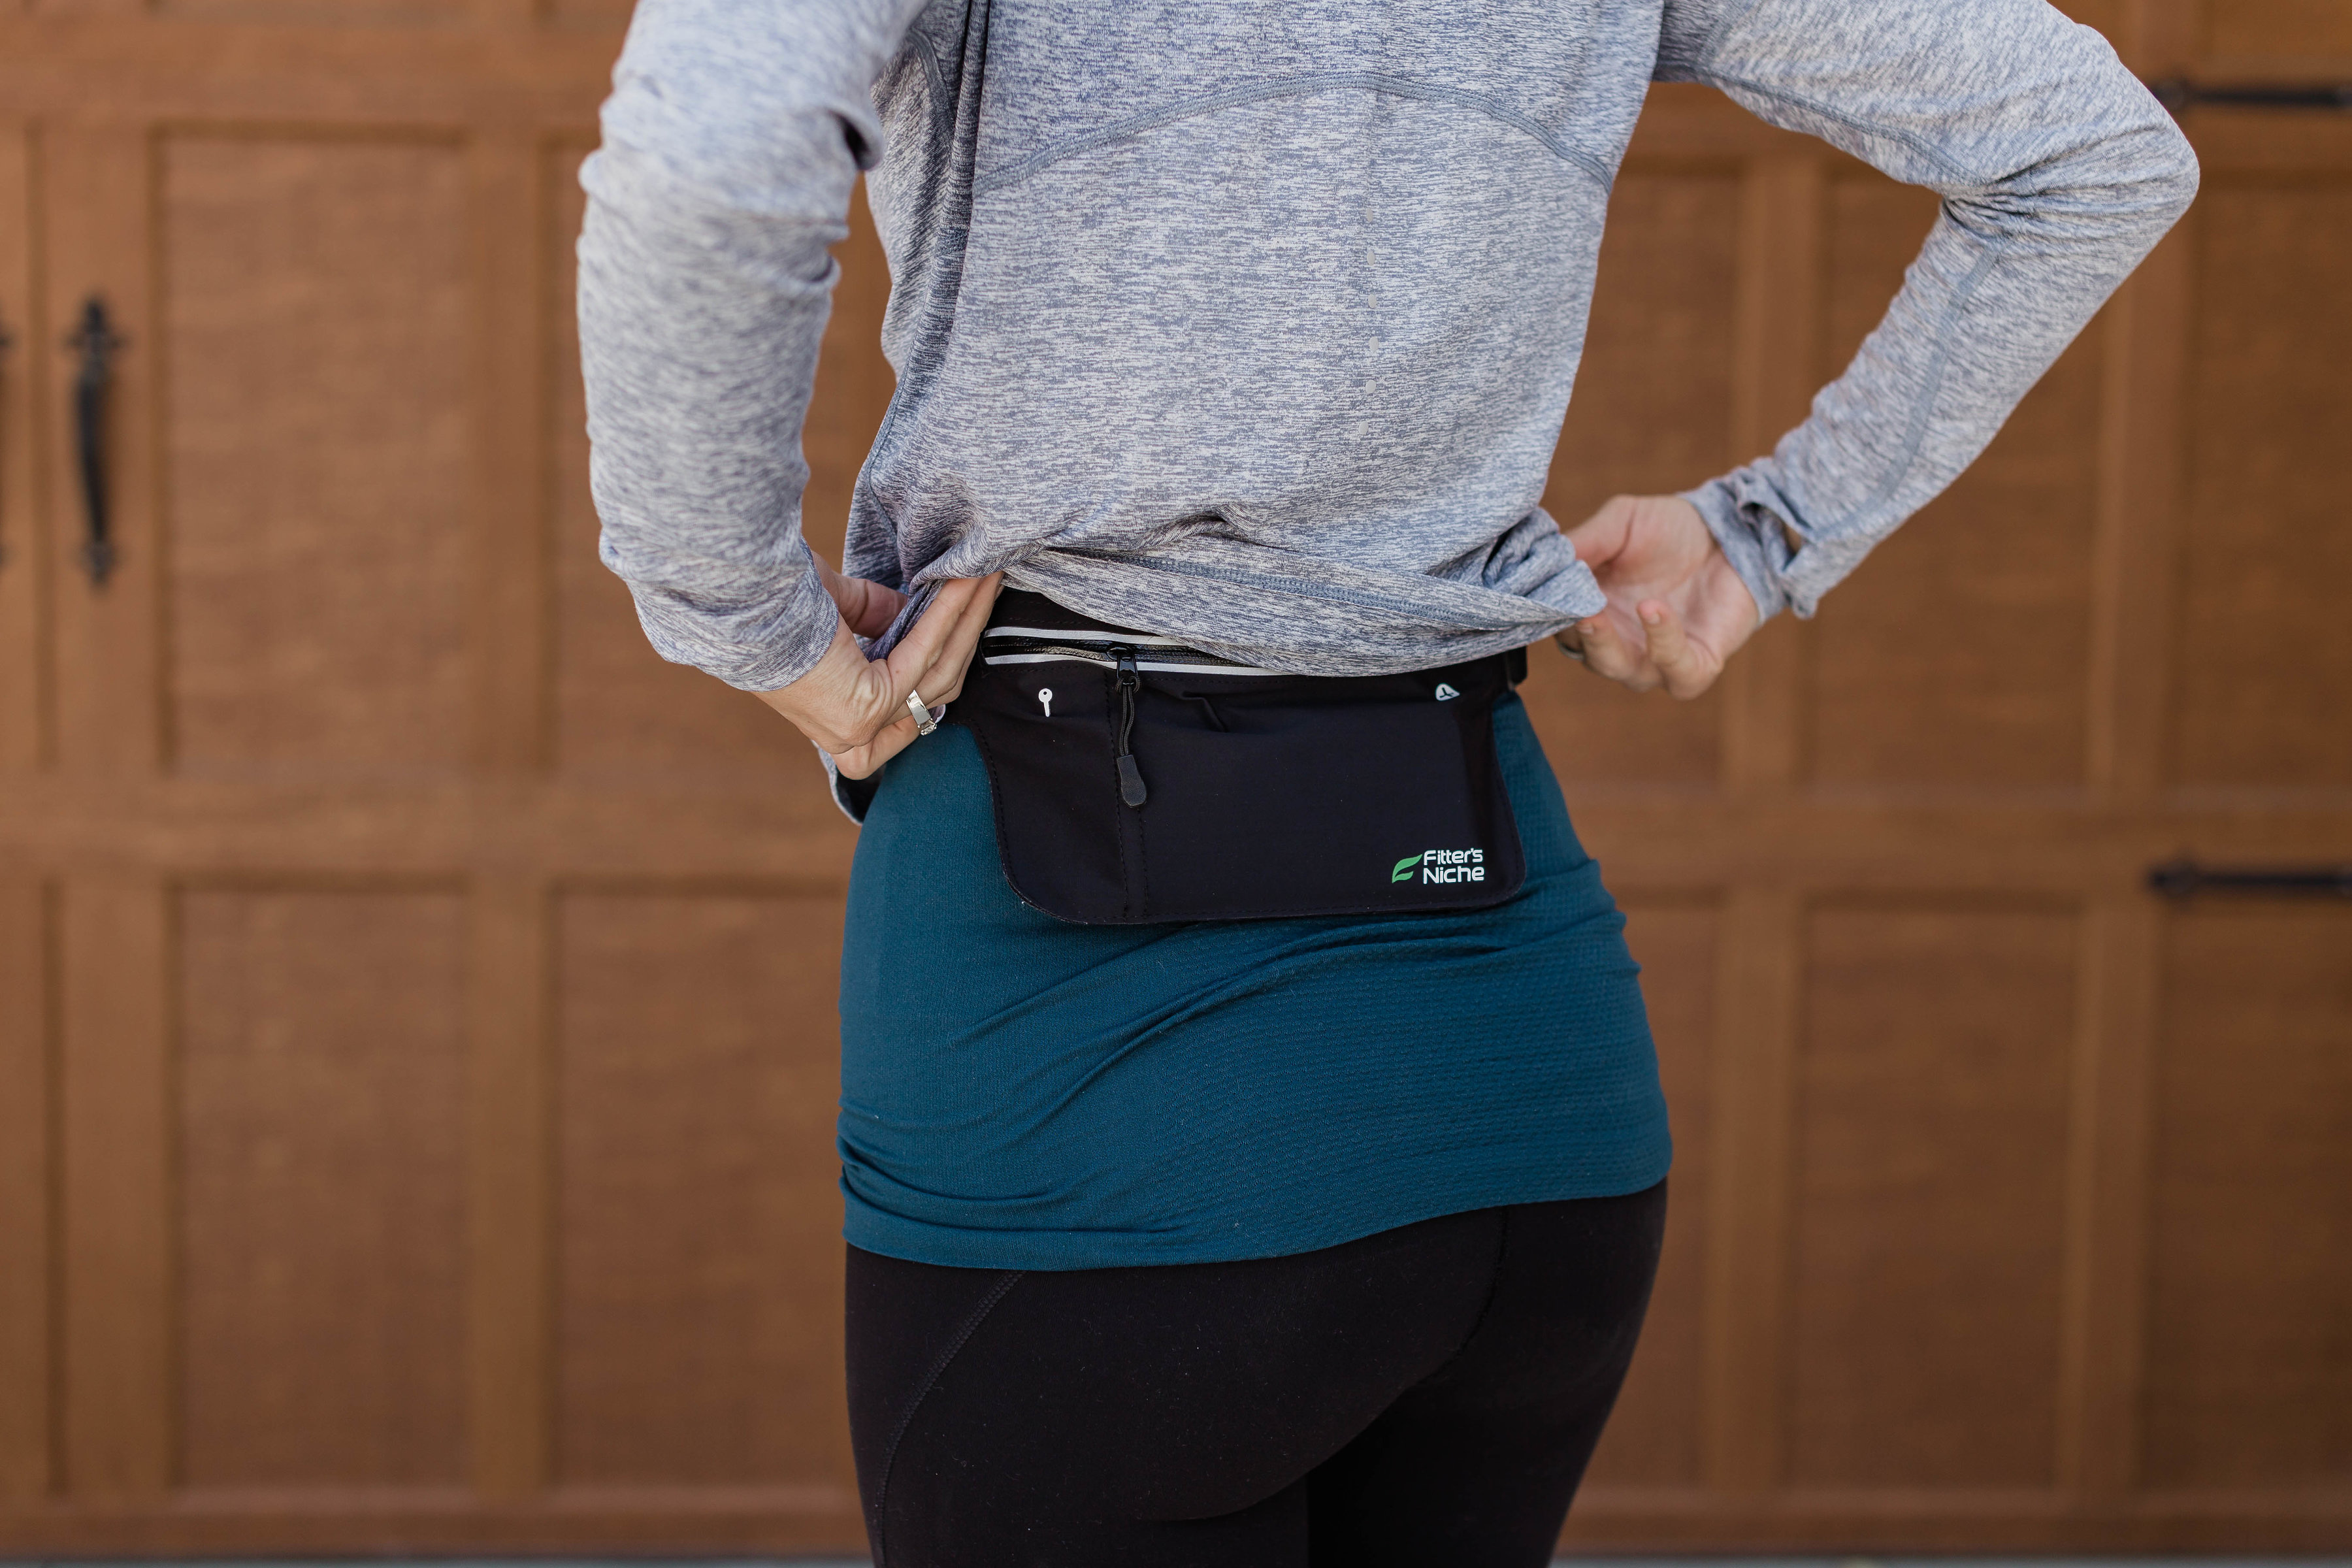 this little running pack tucks under your top and holds a phone and a key!